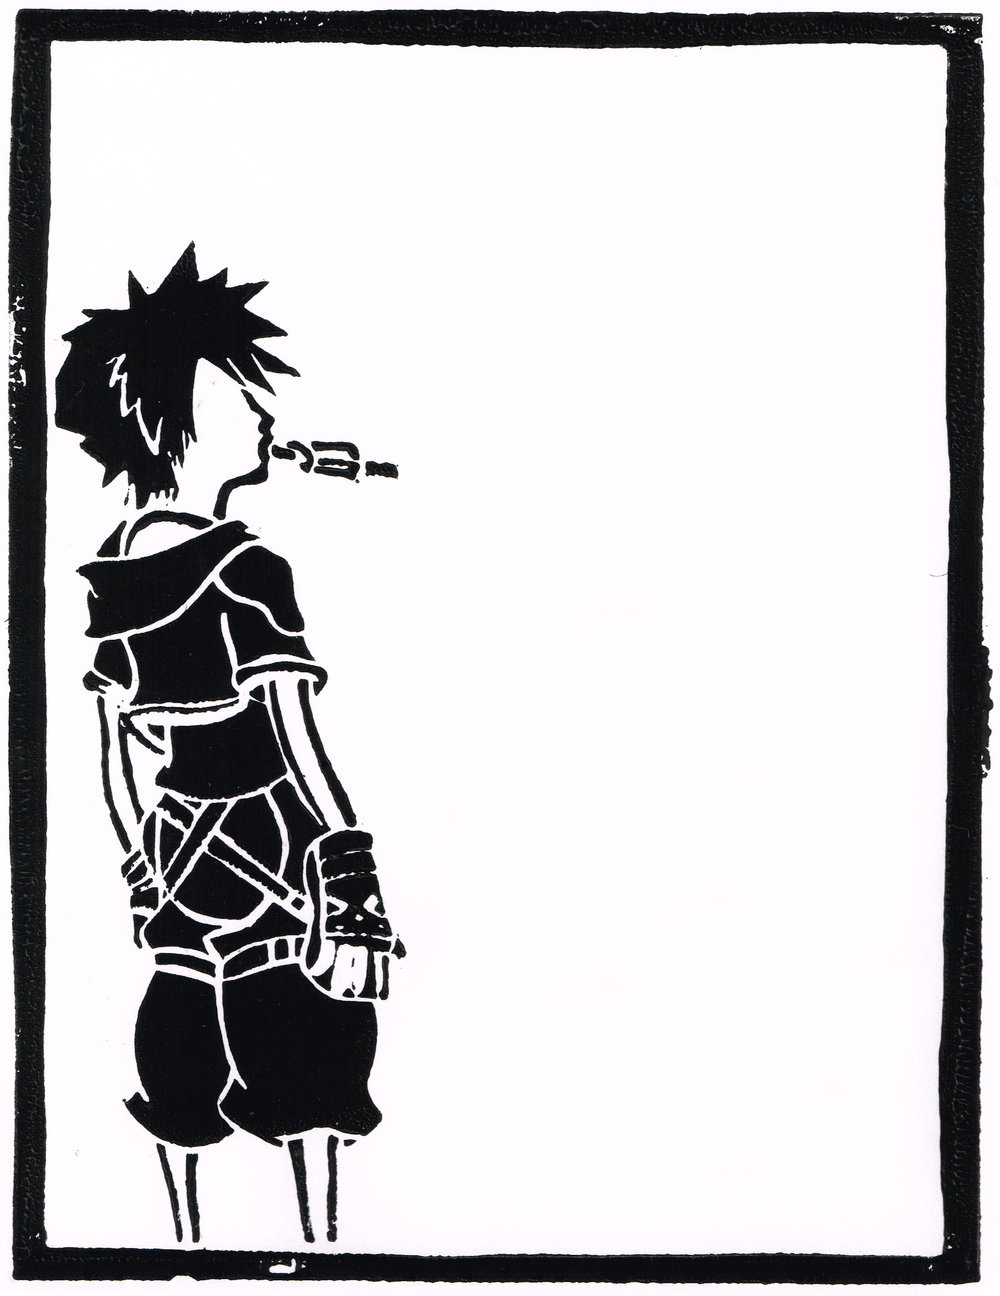 Linocut image of Sora from Kingdom Hearts for an event guide for the Australian Movie & Comic Expo (AMC)